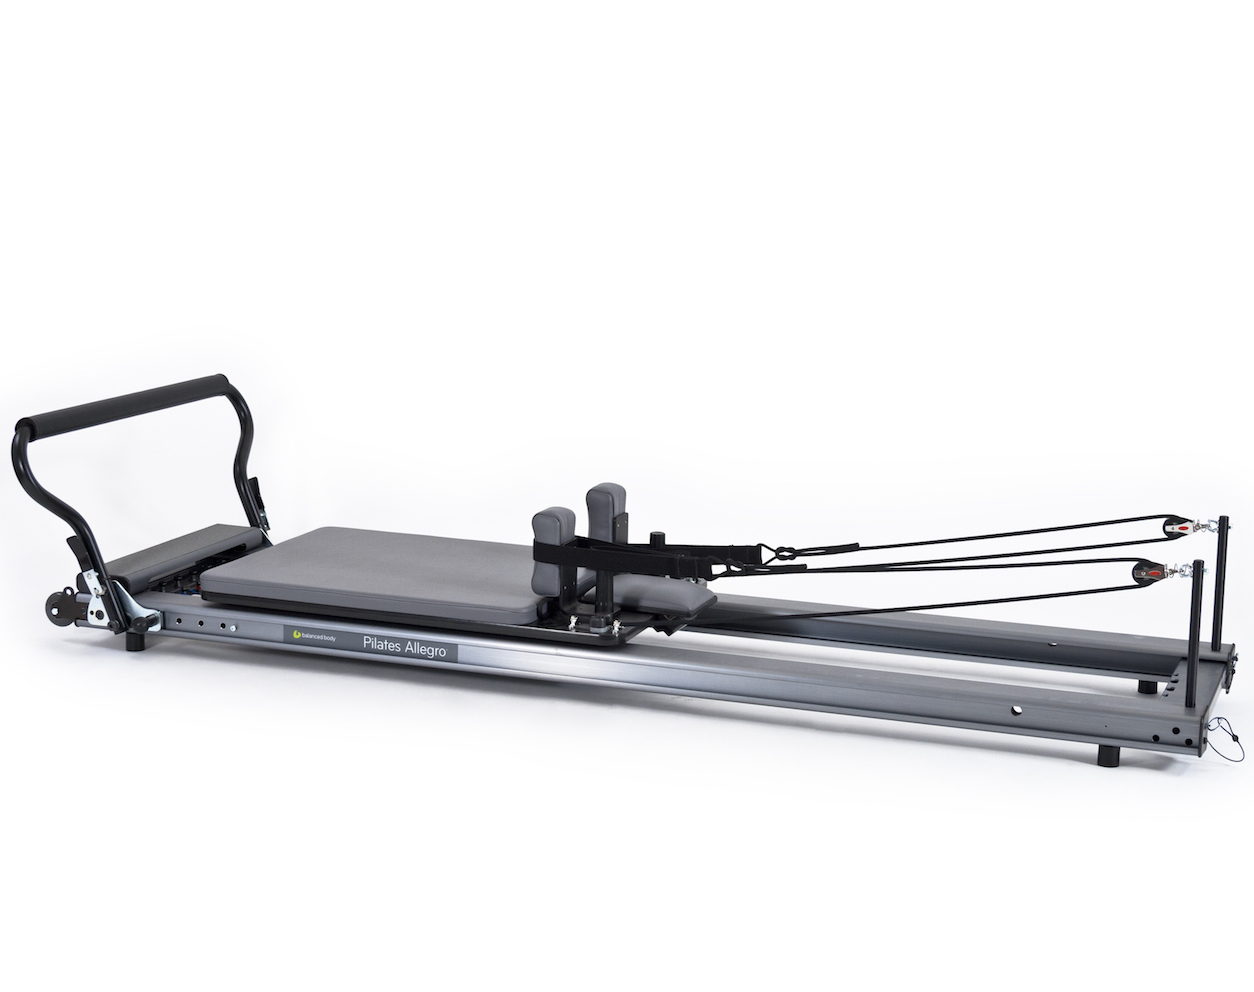 Pilates Allegro 1 Reformer Balanced Body